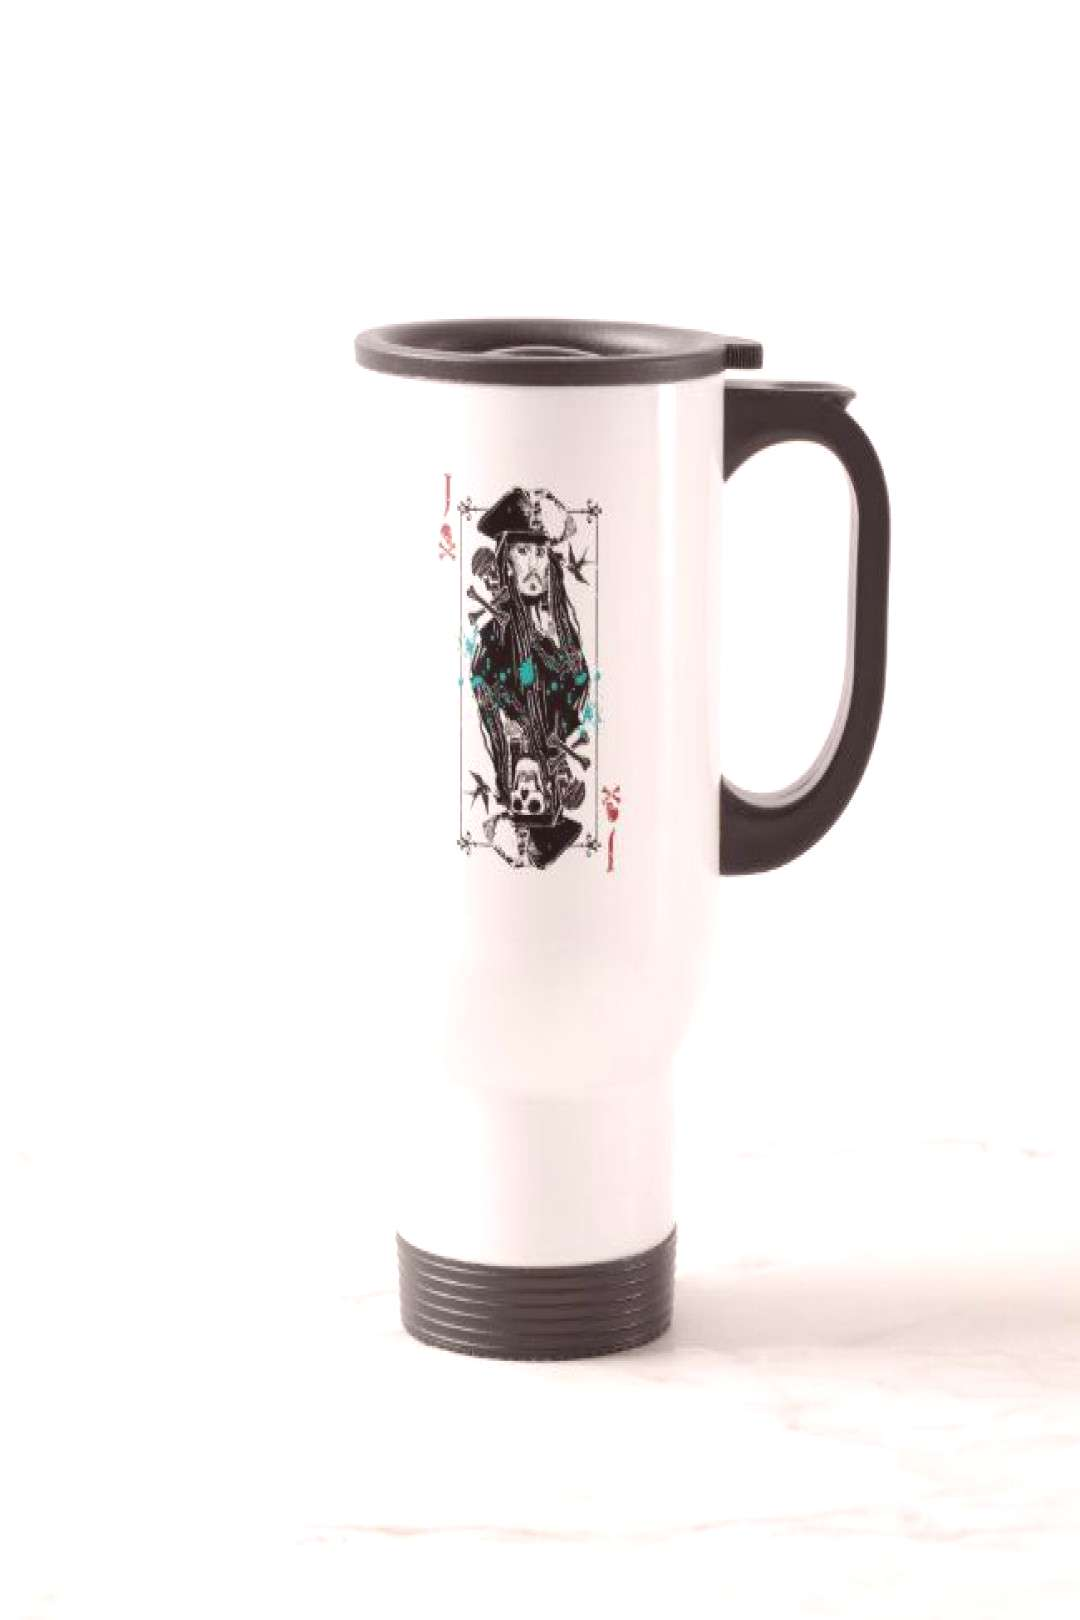 Jack Sparrow - A Wanted Man Travel Mug Gift ideas for men coffee mugs one of a kind drinkware